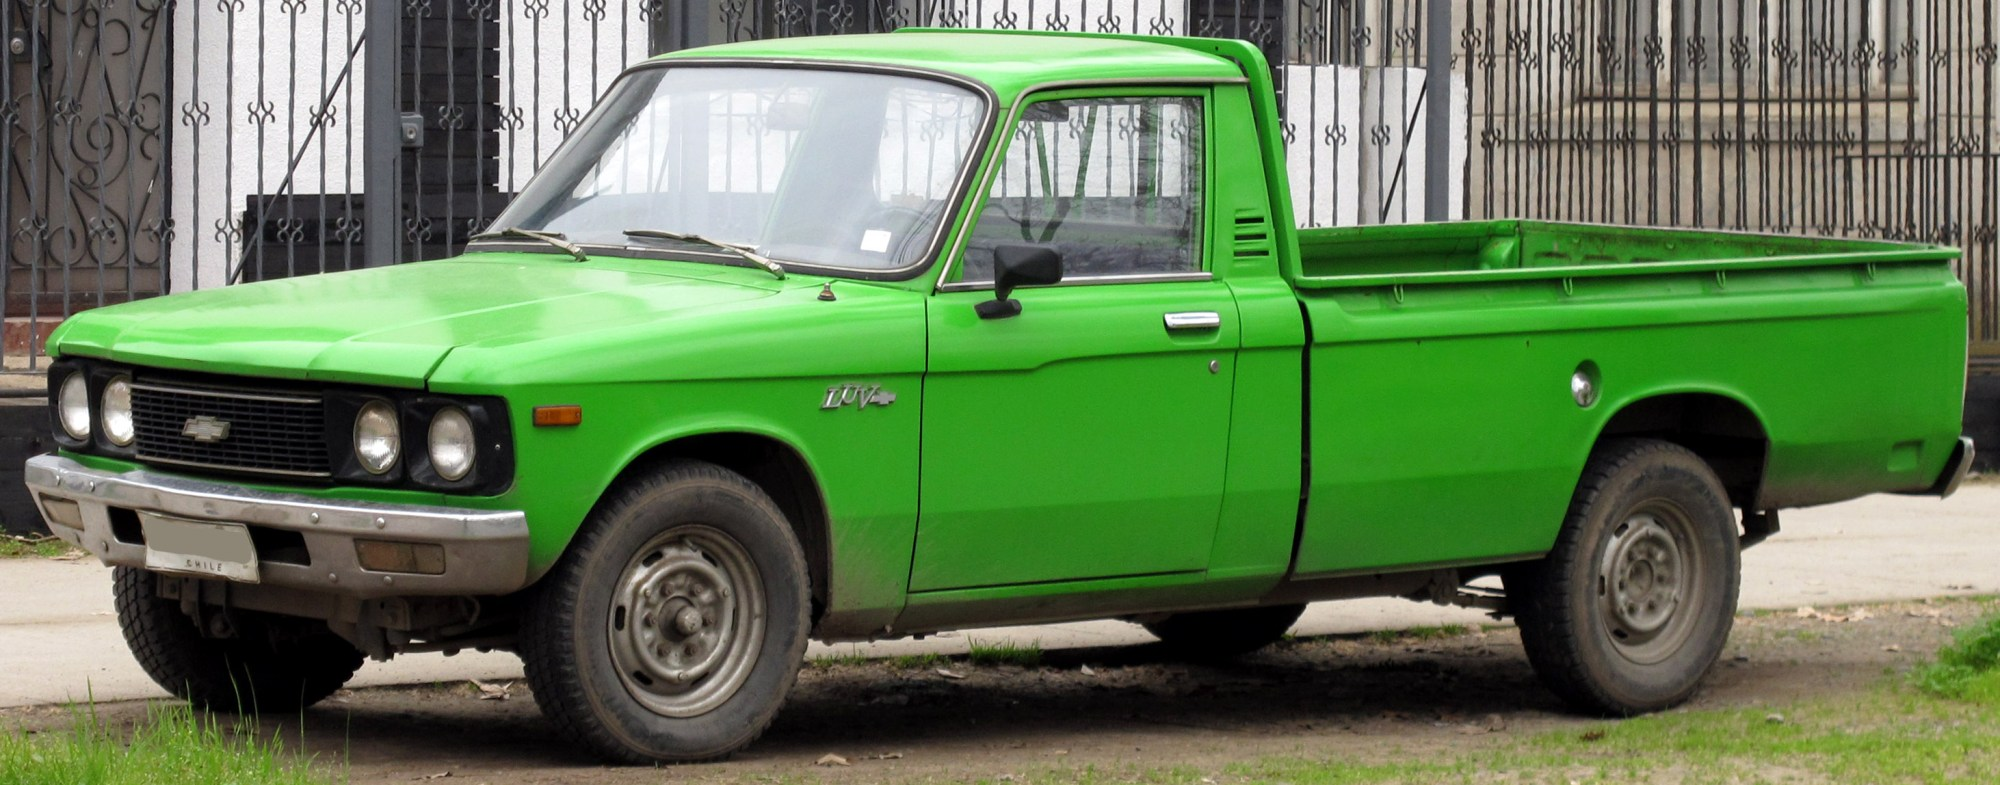 hight resolution of chevrolet luv 1600 1978 pickup truck from wiki commons